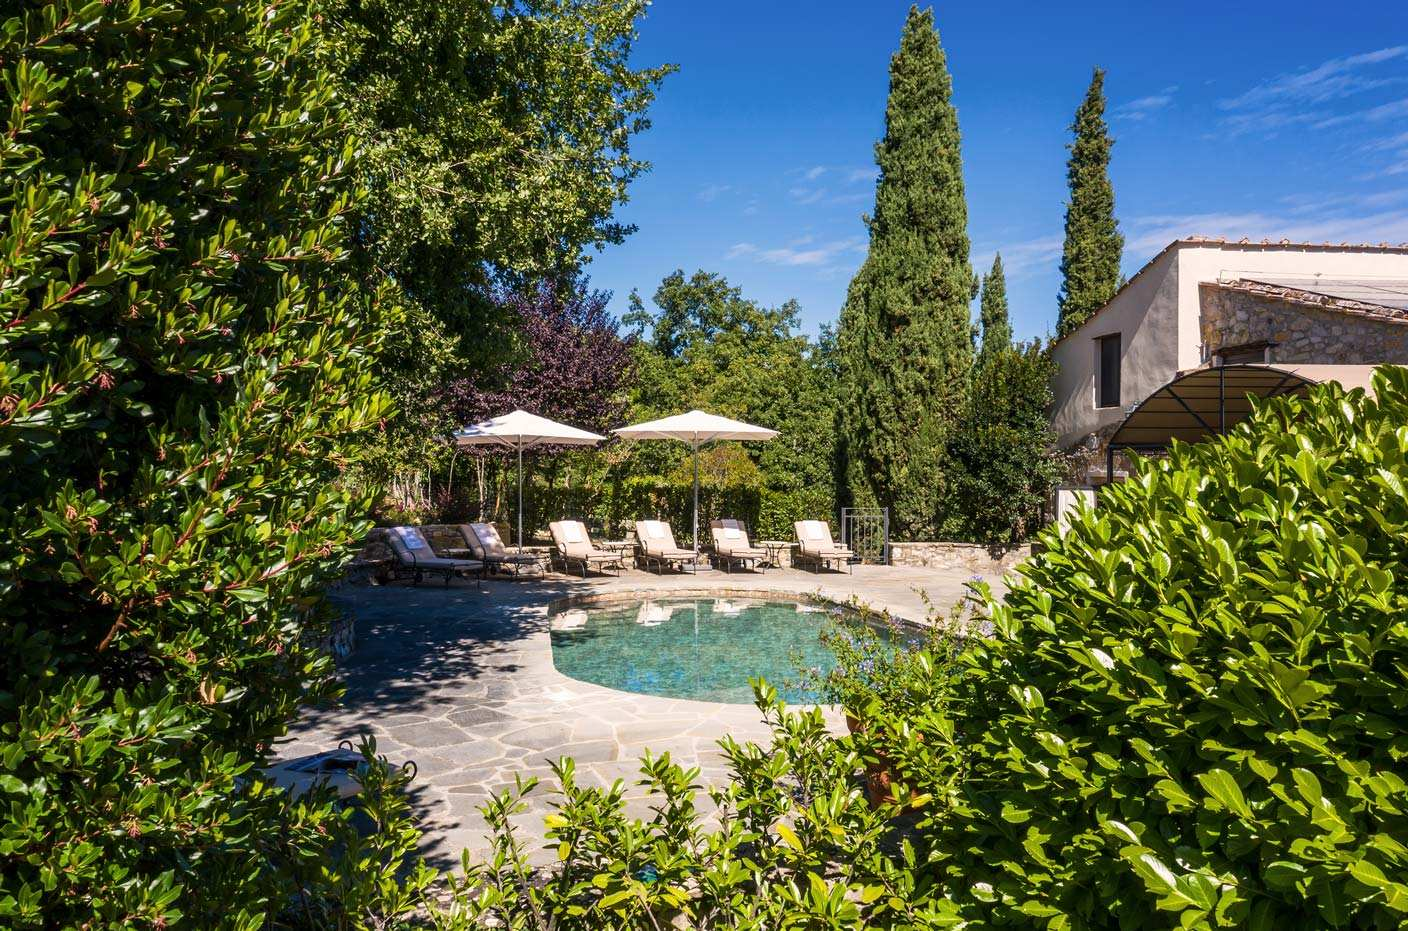 tuscany italy vacation rentals